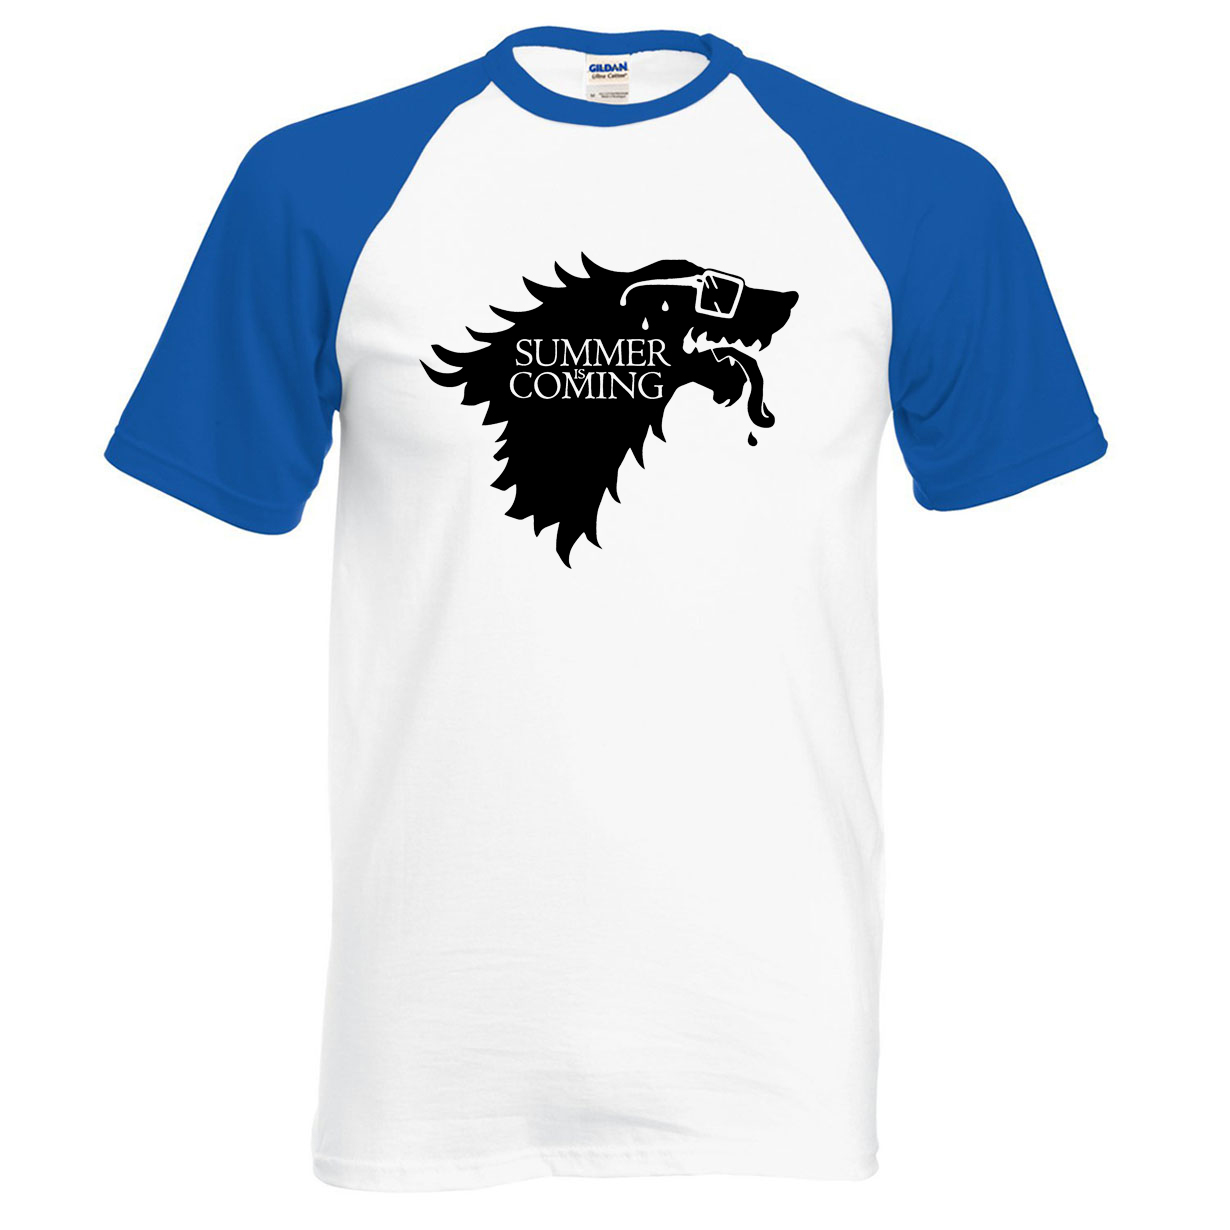 Design t shirt unique - Novelty T Shirts Unique Design Game Of Thrones Summer Is Coming Printed Funny T Shirts